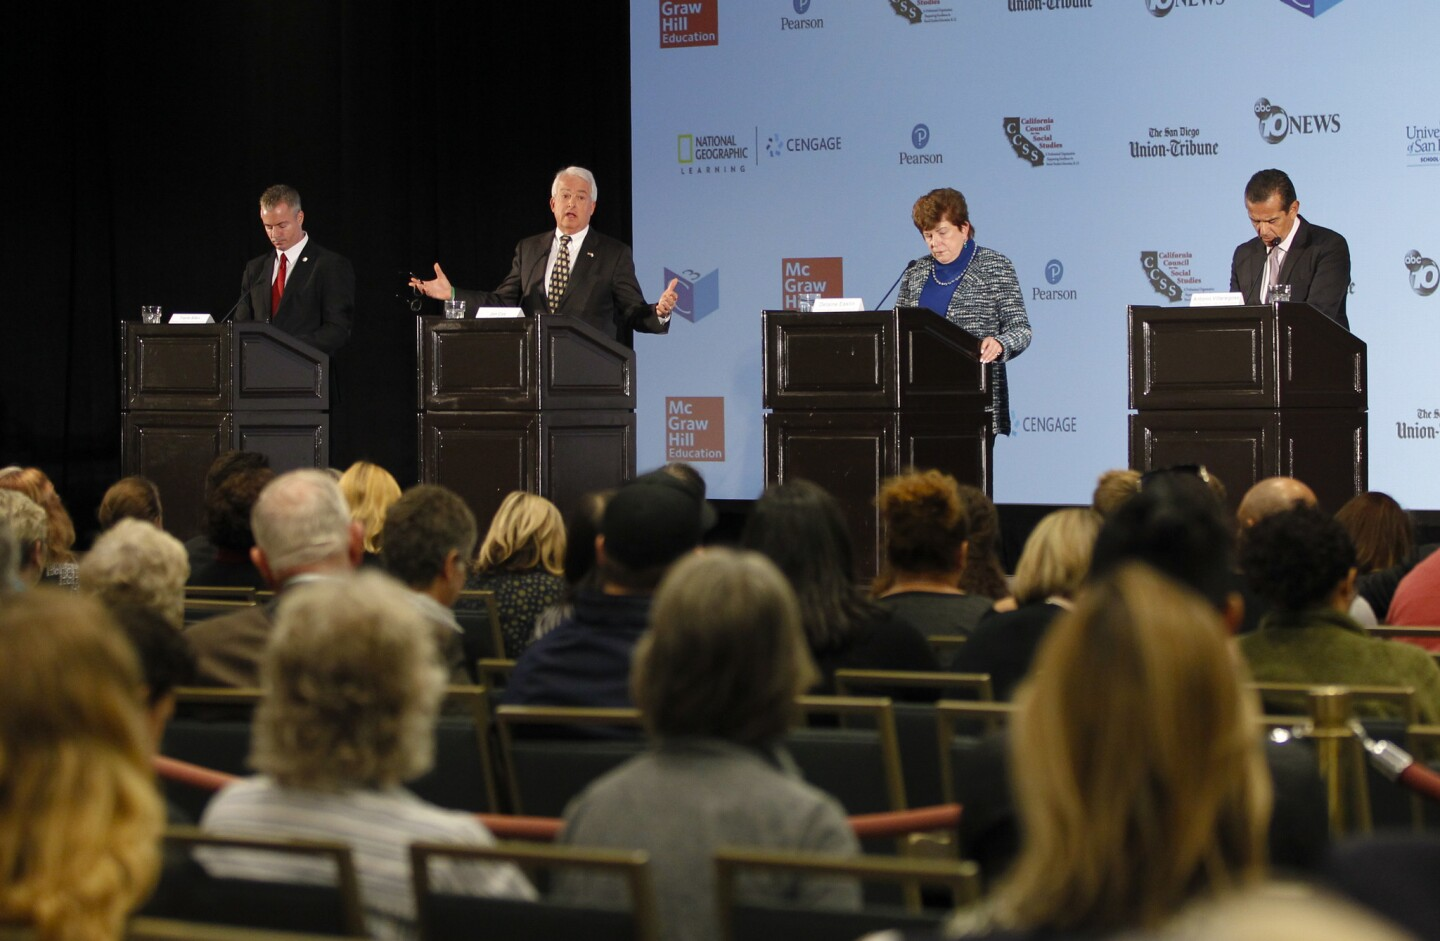 California Gubernatorial Candidates' Forum, hosted by the California Council for the Social Studies